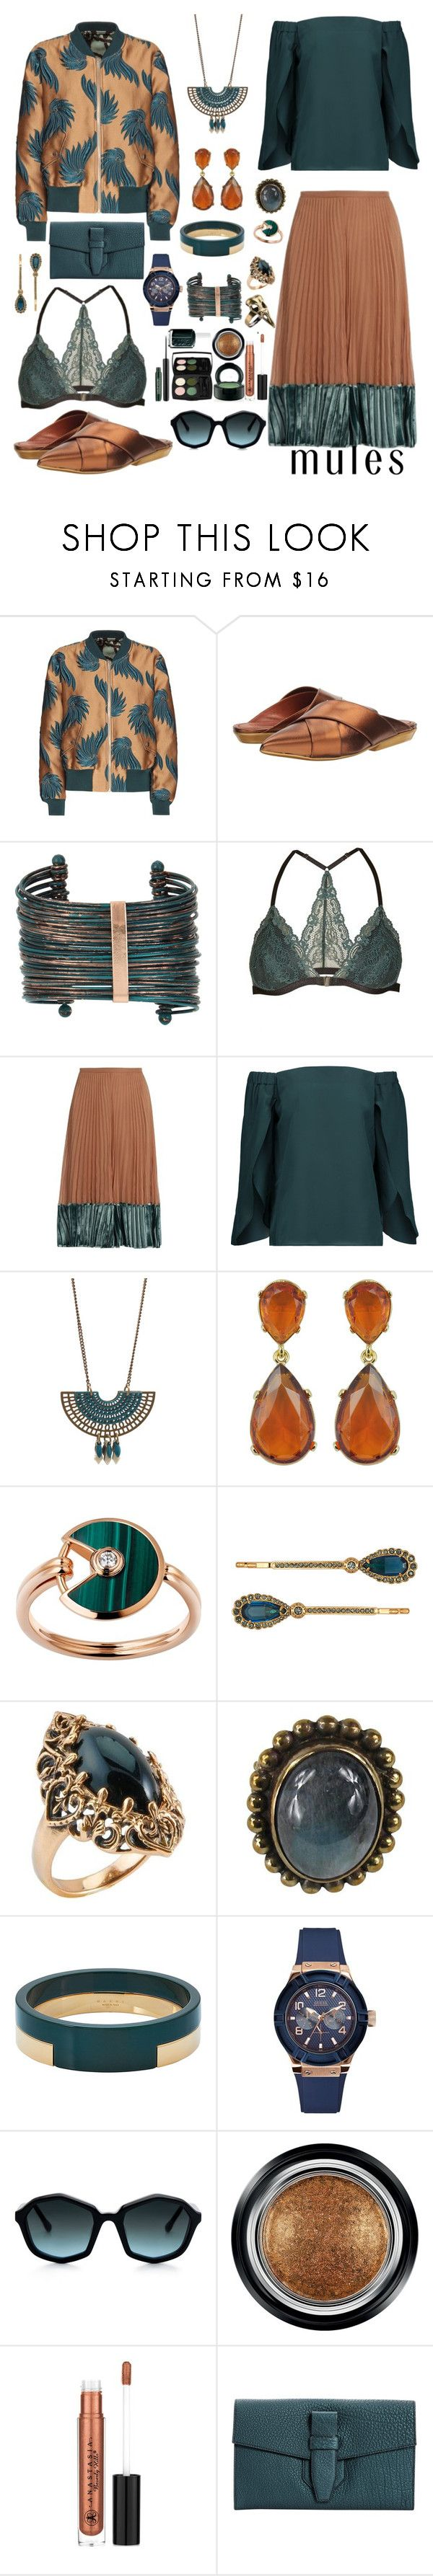 """""""Slip 'em on mules & Statement necklace"""" by booknerd1326 ❤ liked on Polyvore featuring Dries Van Noten, Missoni, Boutique+, Topshop, Valentino, Bailey 44, Kenneth Jay Lane, Cartier, Henri Bendel and Barse"""